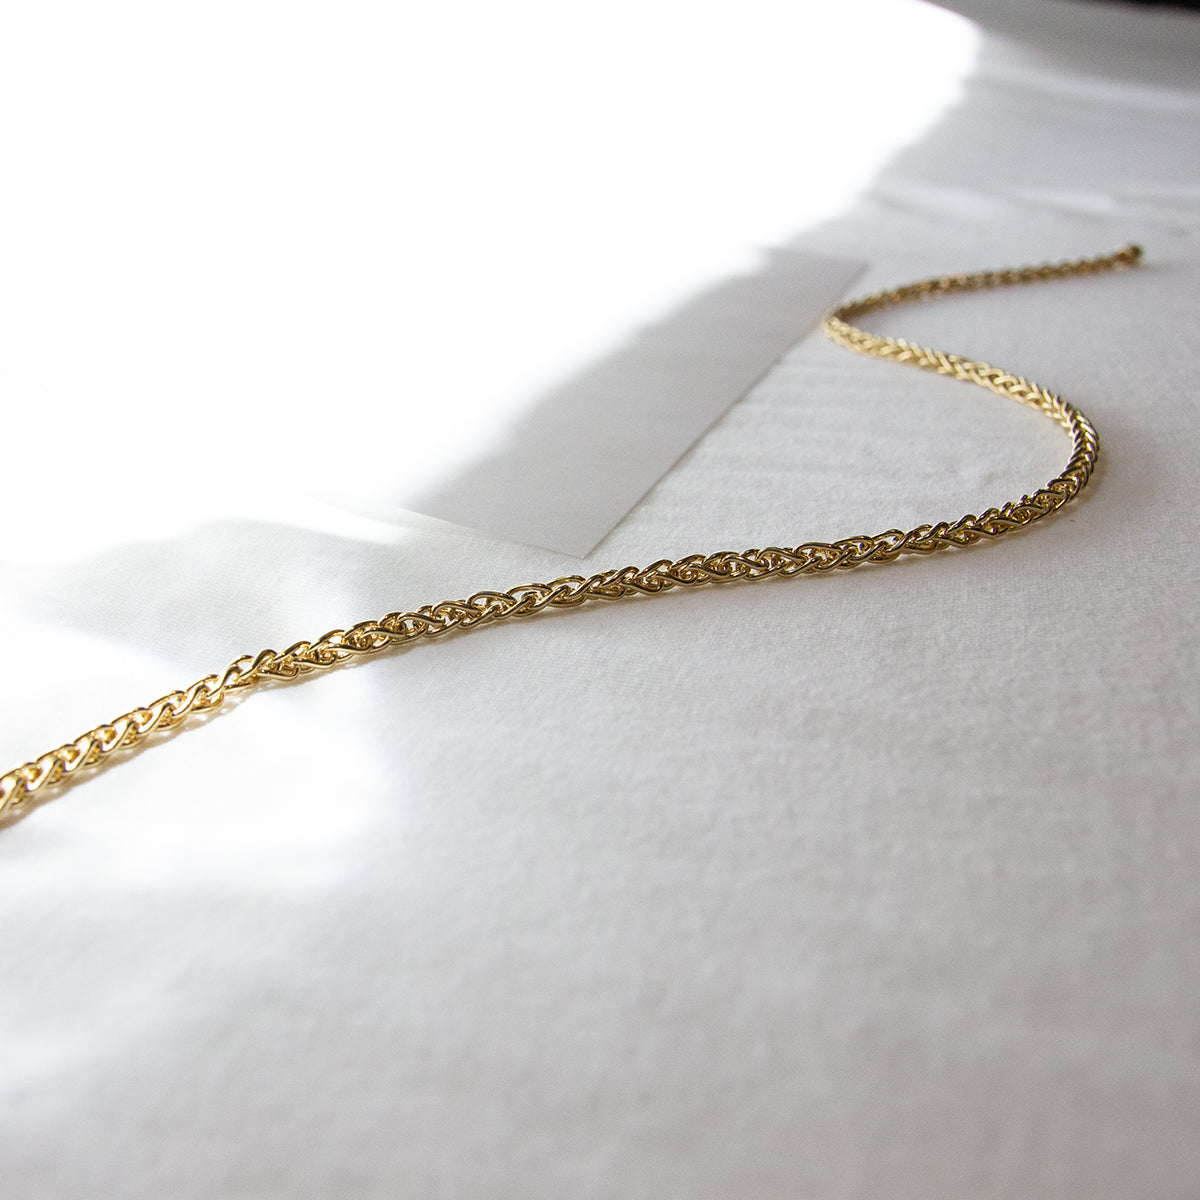 Kat Wheat Chain Necklace